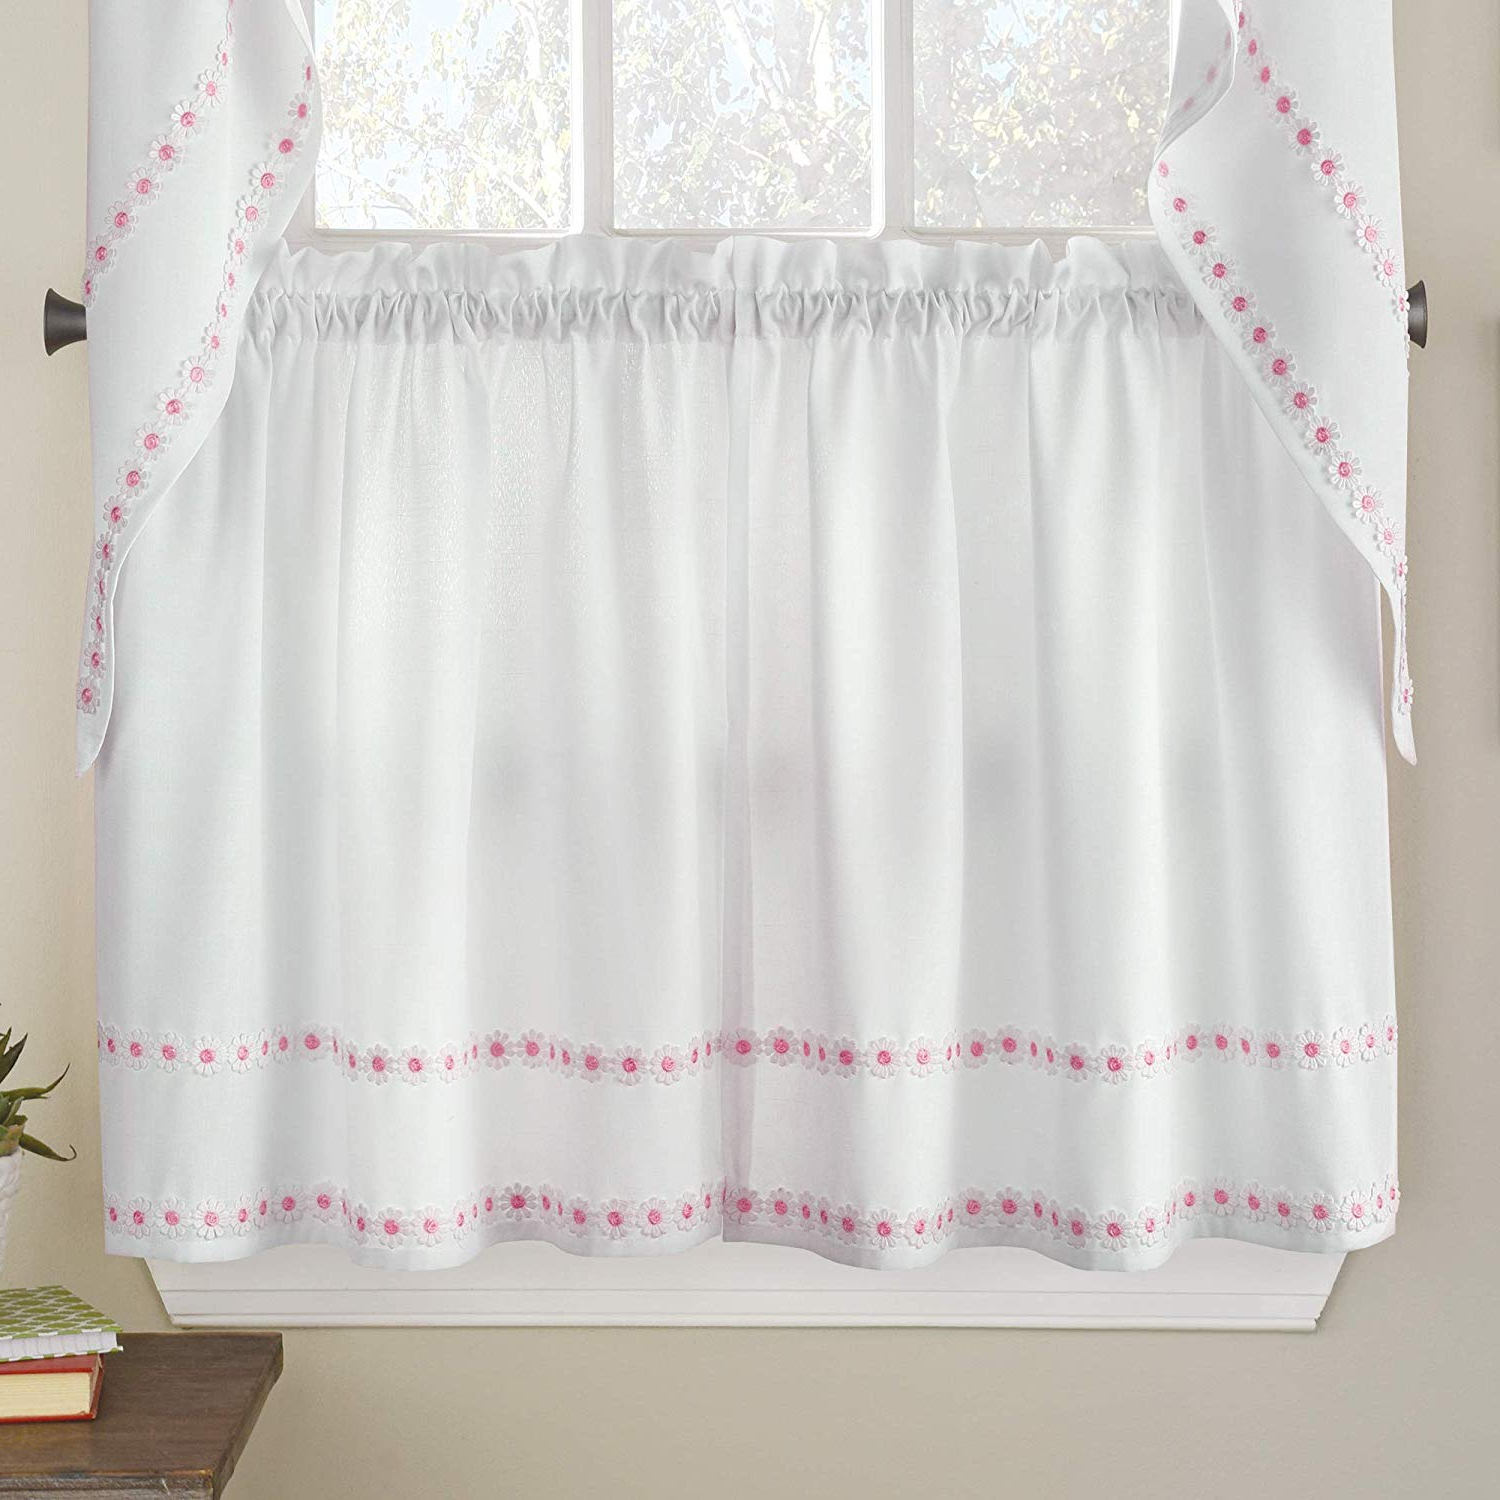 "Well Known Marine Life Motif Knitted Lace Window Curtain Pieces With Regard To Sweet Home Collection Reef Marine Knitted Lace Kitchen Curtains, 36"" Tier, White (View 10 of 20)"